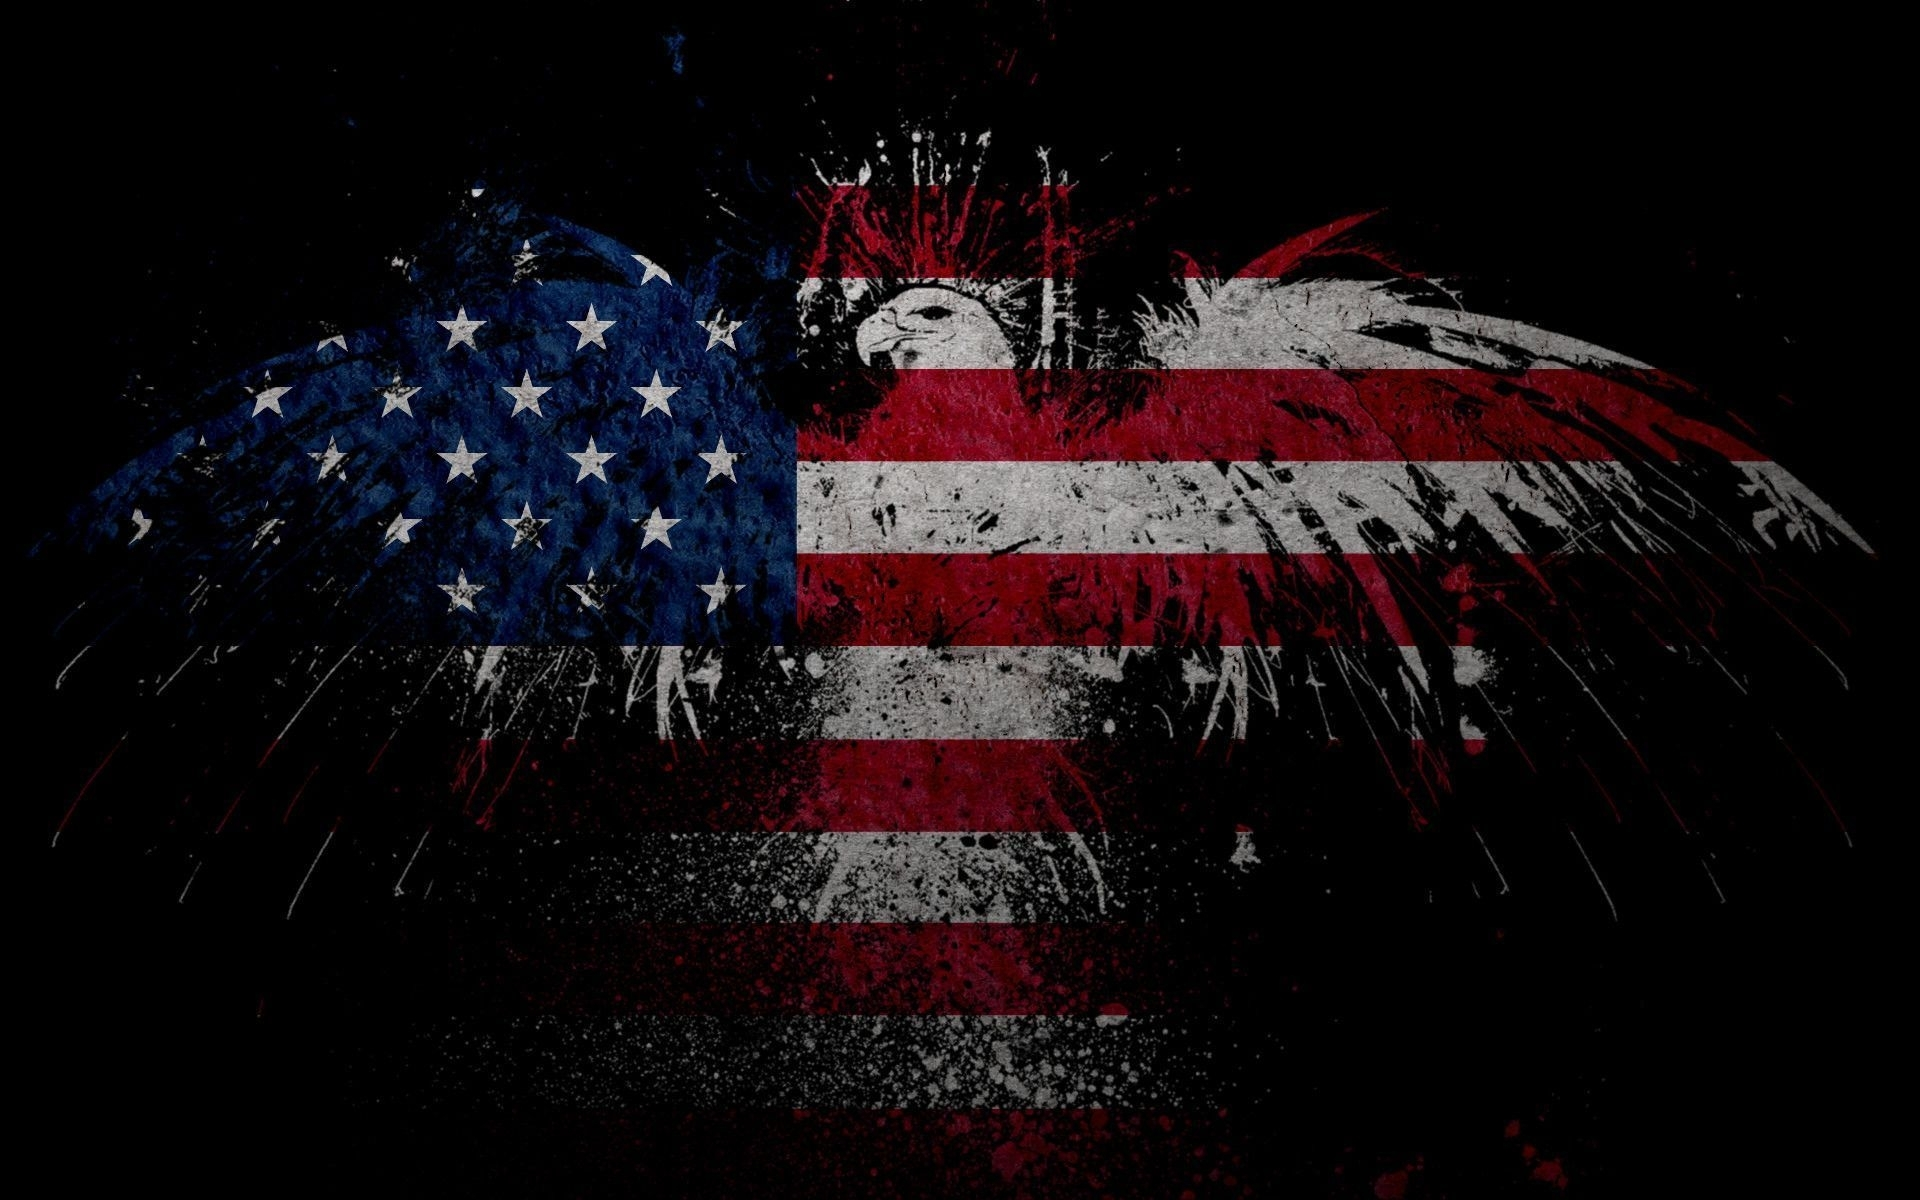 american flag background powerpoint backgrounds for free | hd